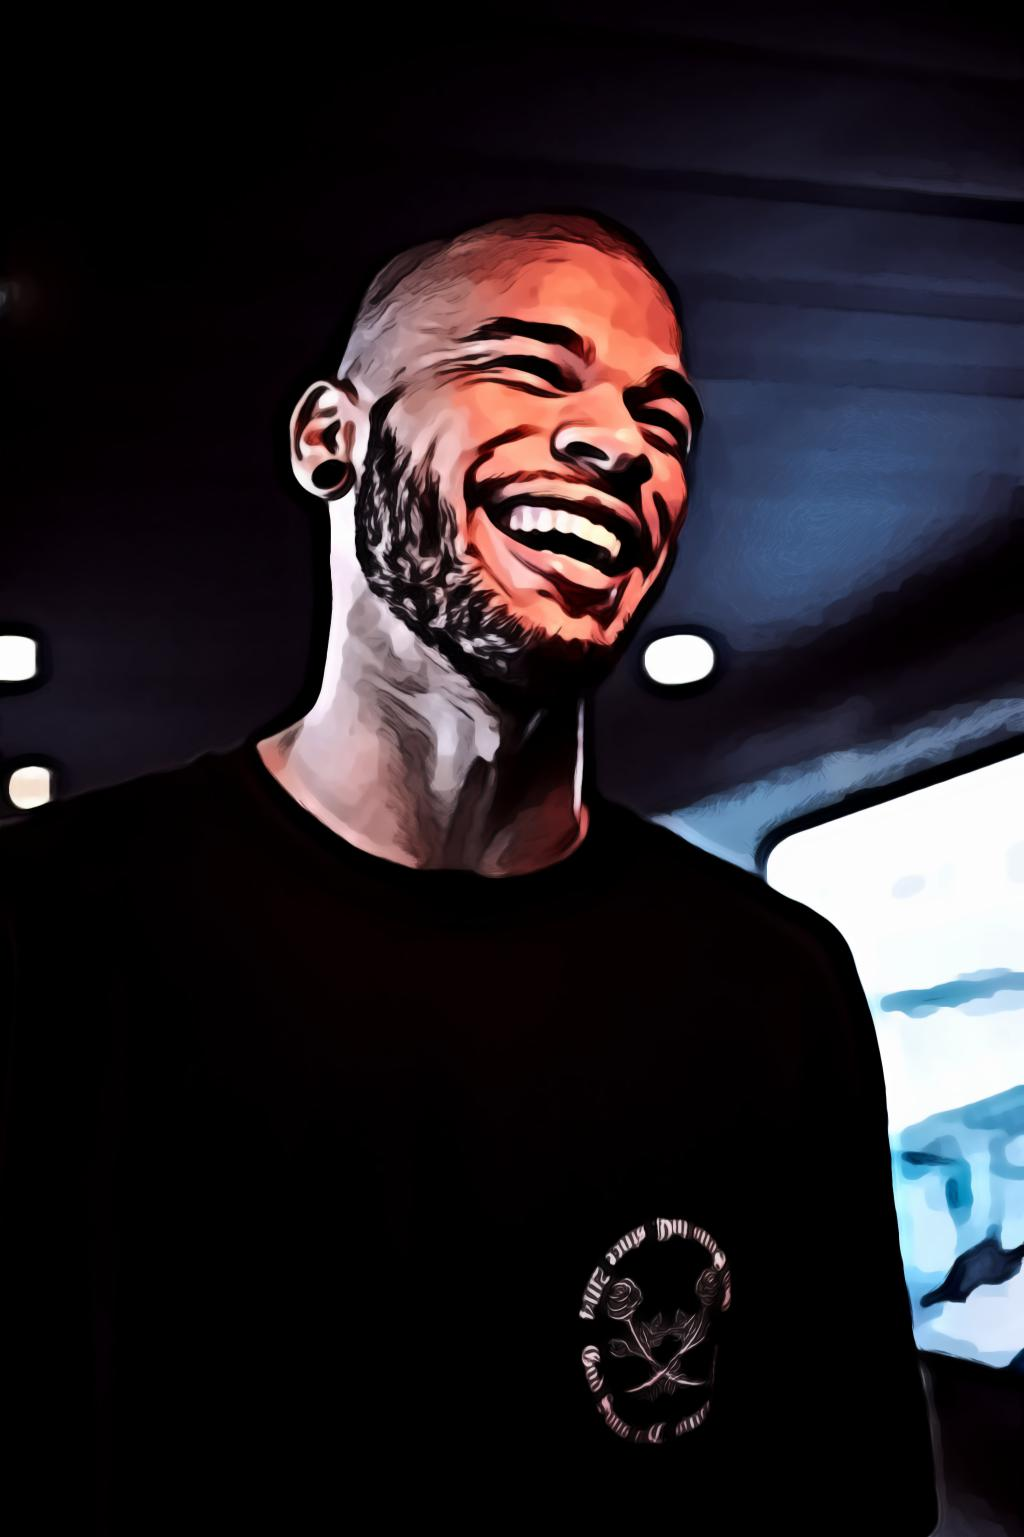 Portrait of Laughing Guy